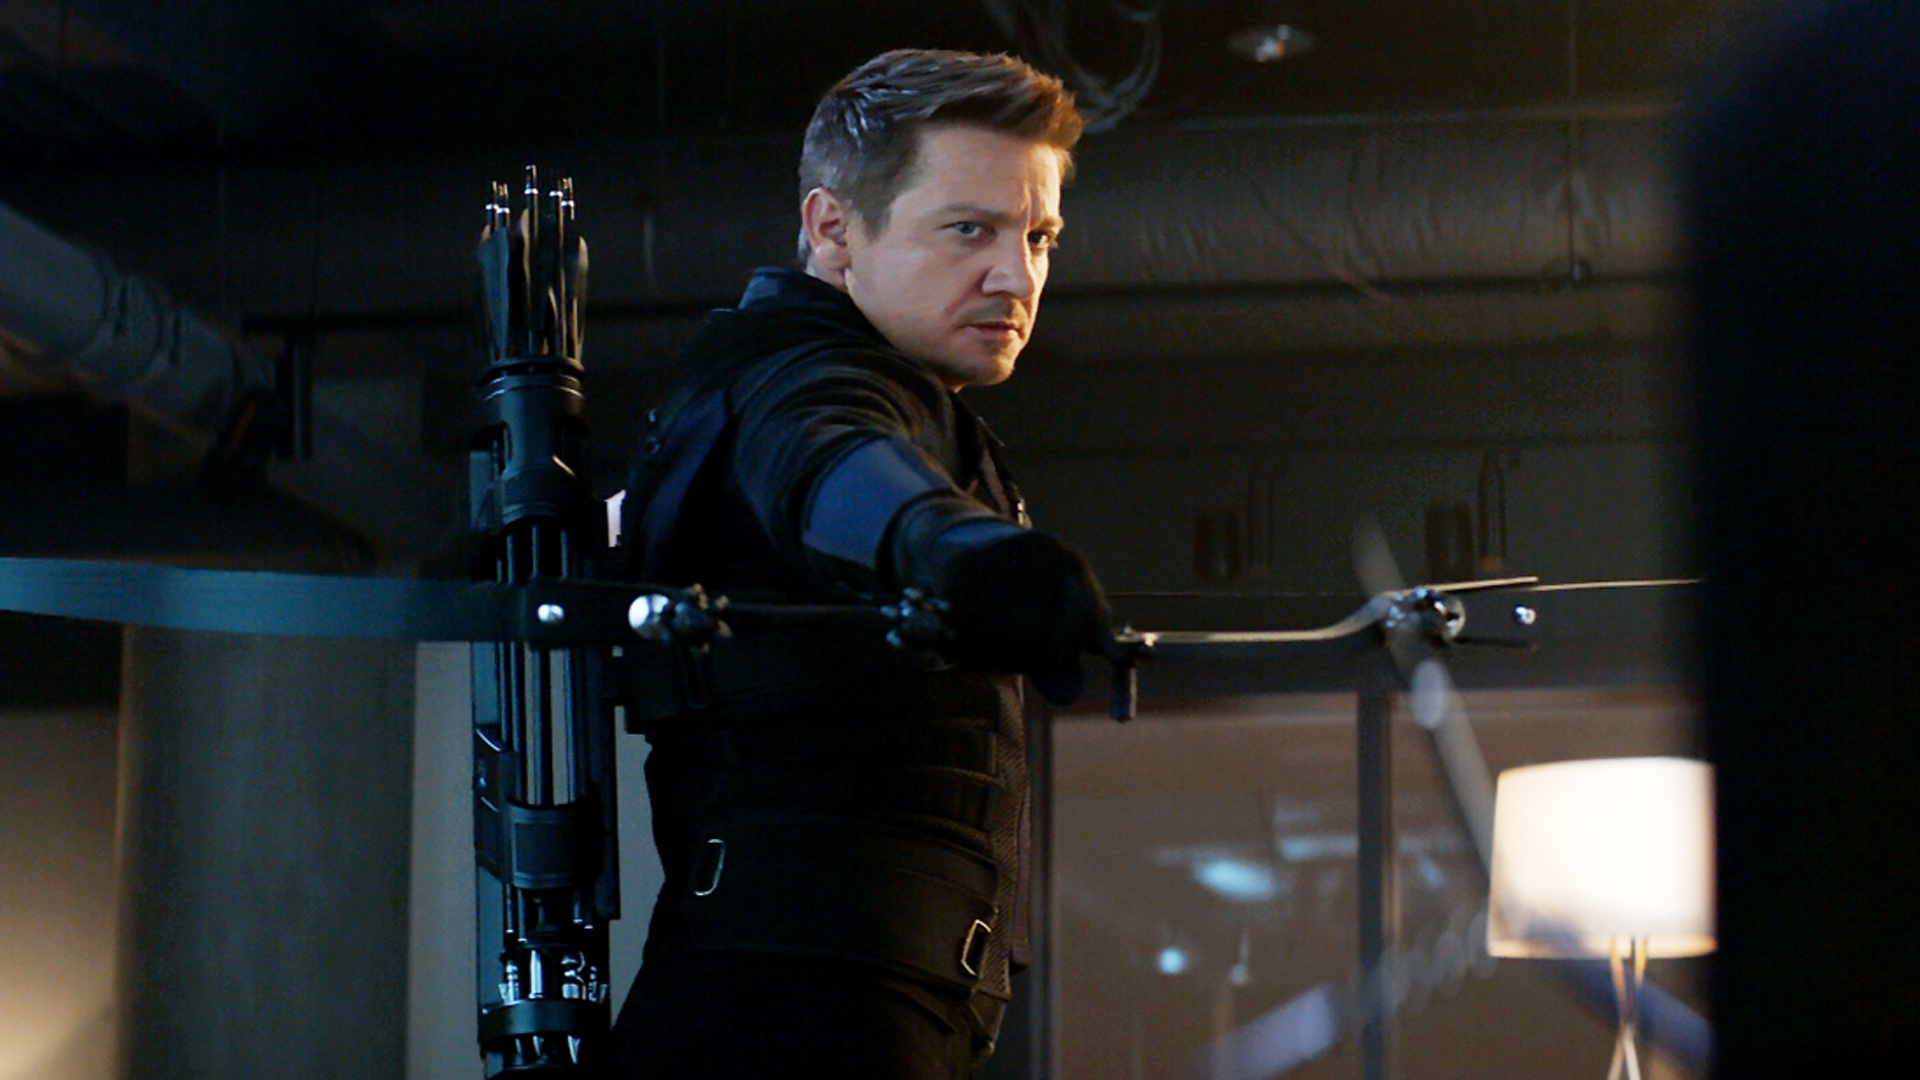 jeremy-renner-says-they-are-doing-wondrous-things-with-hawkeye-in-avengers-infinity-war-social.jpg